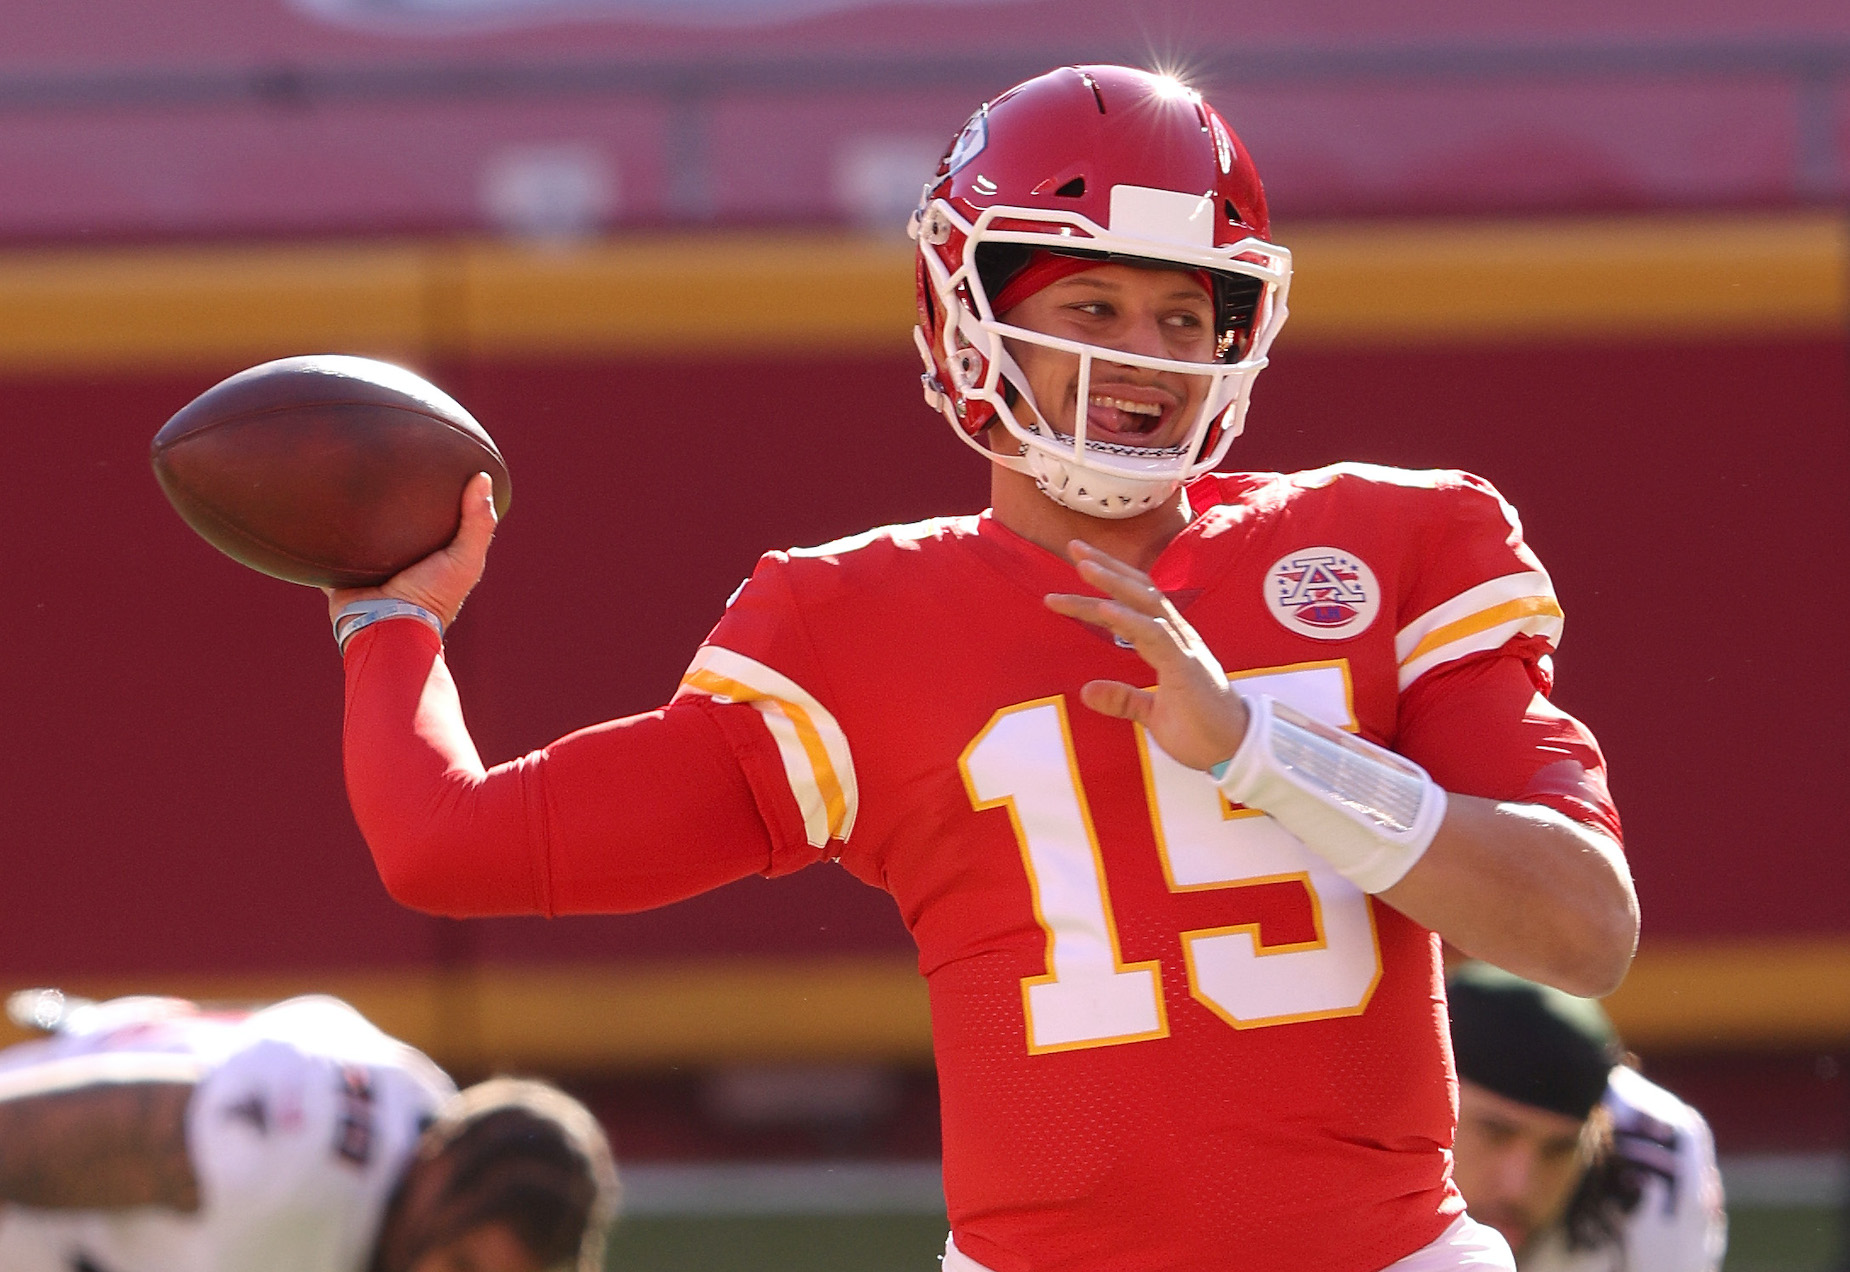 Whether he's playing for the Kansas City Chiefs or riding his Peloton, Patrick Mahomes is always competing